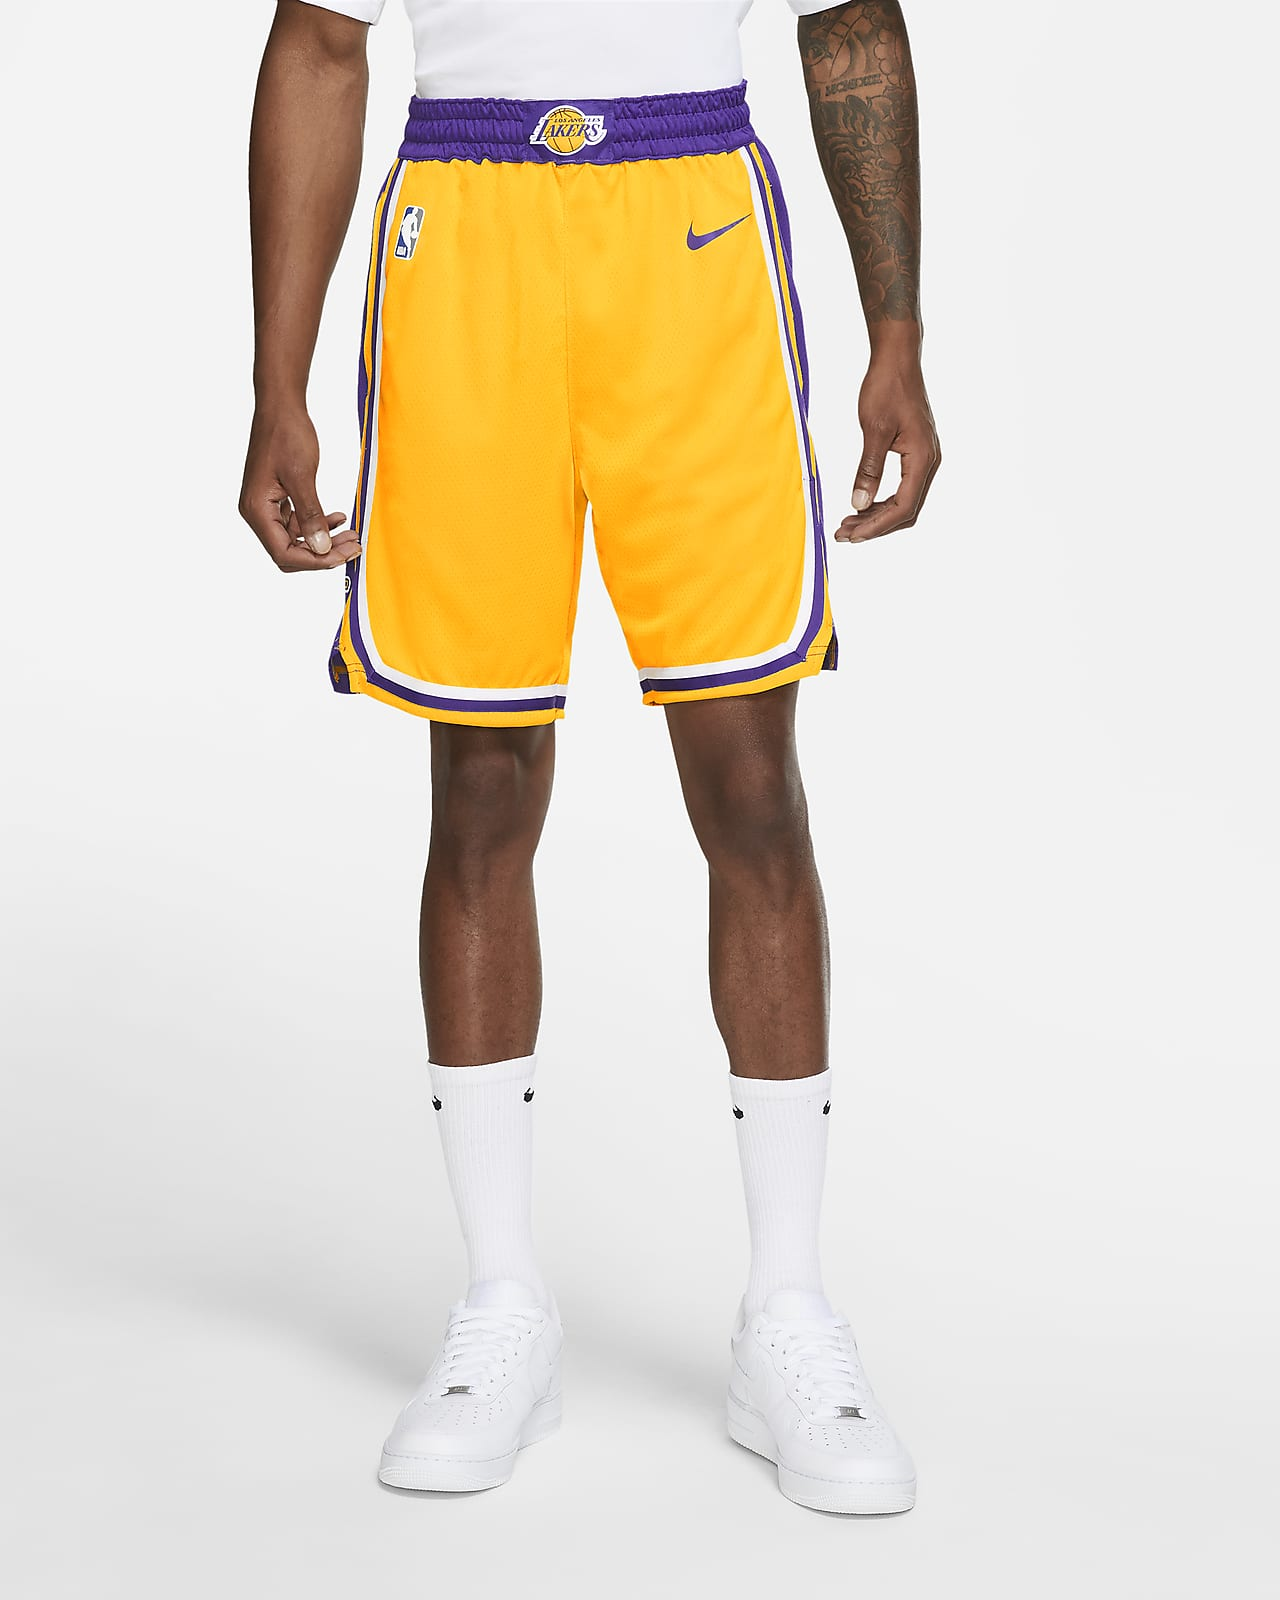 Los Angeles Lakers Icon Edition Men's Nike NBA Swingman Shorts